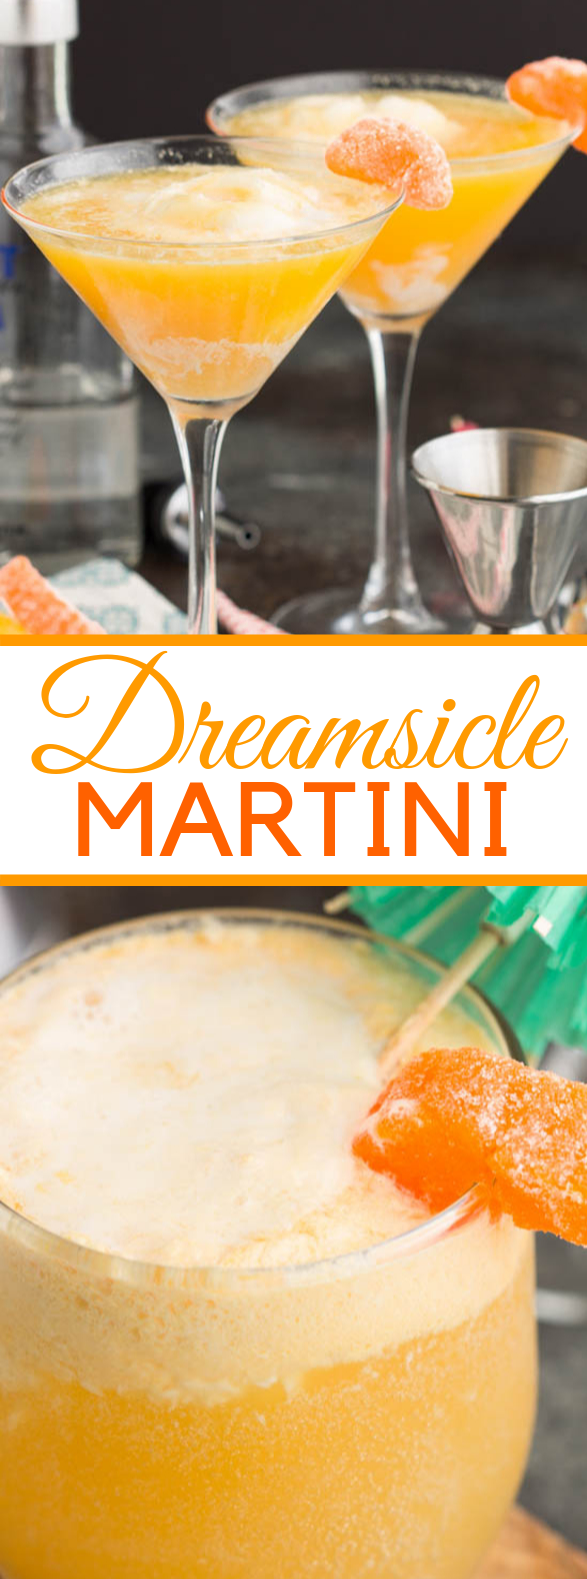 Dreamsicle Martini Recipe #drinks #summerdrink